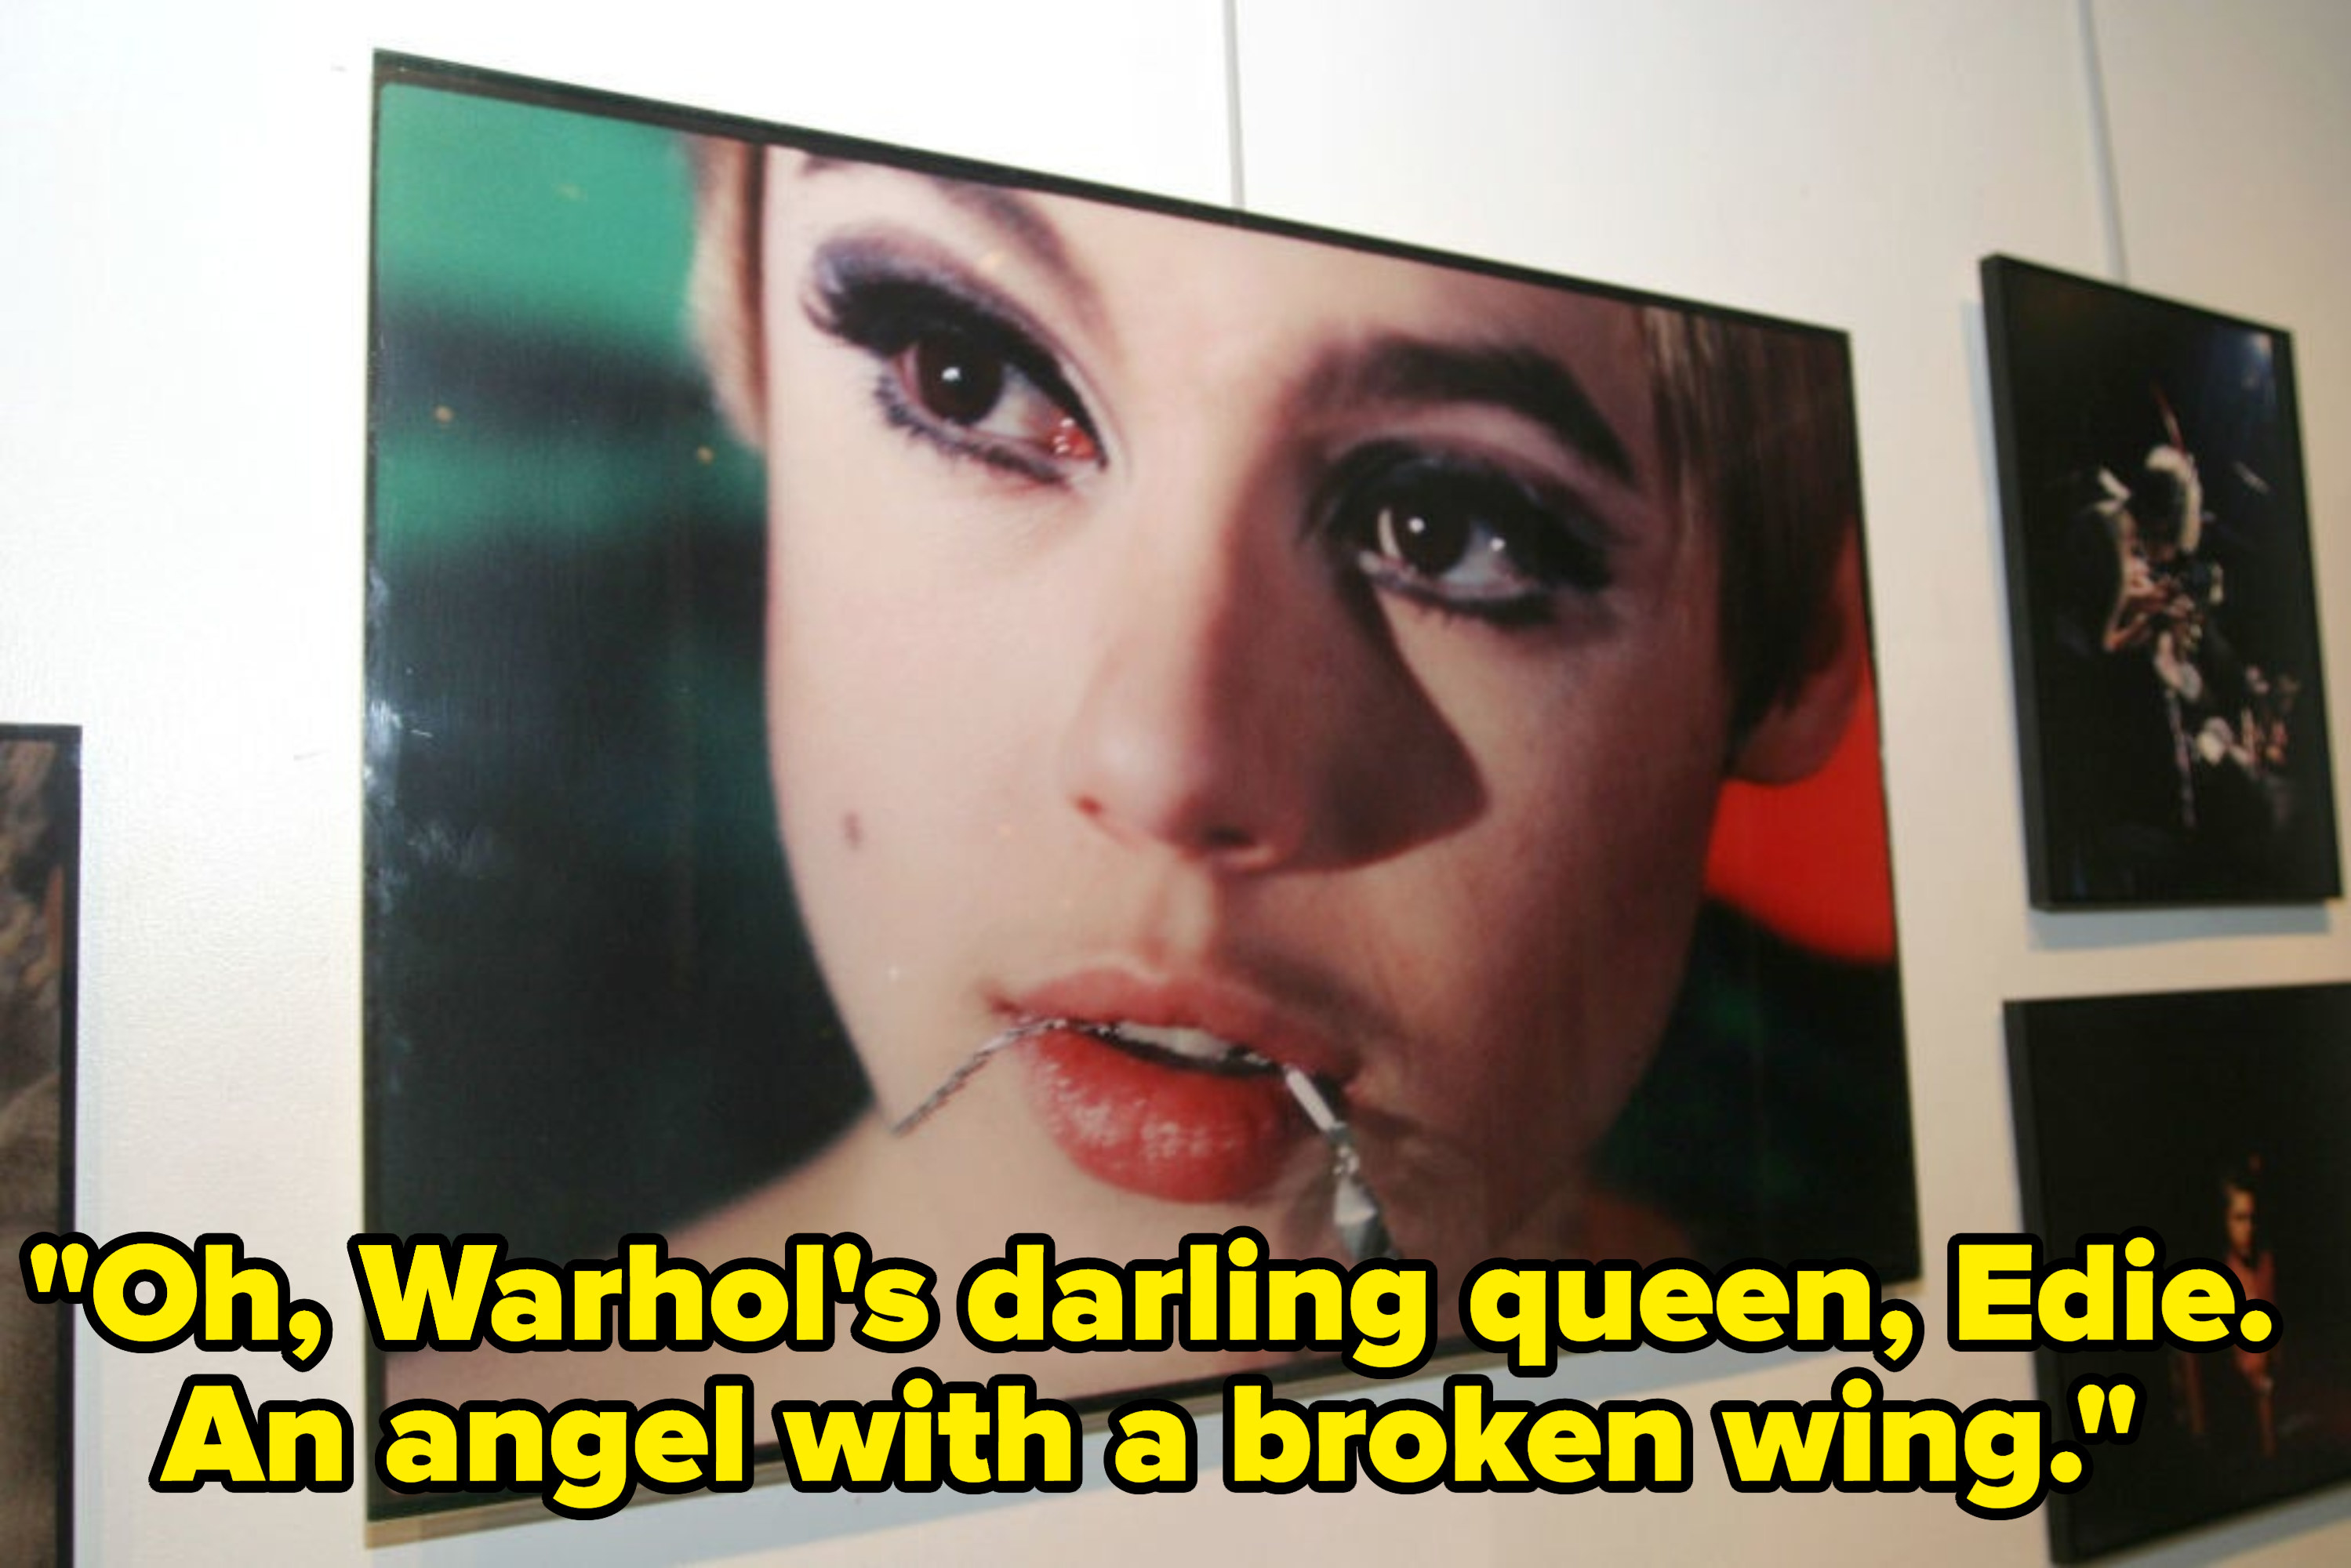 """A portrait of Edie Sedgwick, captioned with the lyric """"Oh, Warhol's darling queen, Edie. An angel with a broken wing."""""""